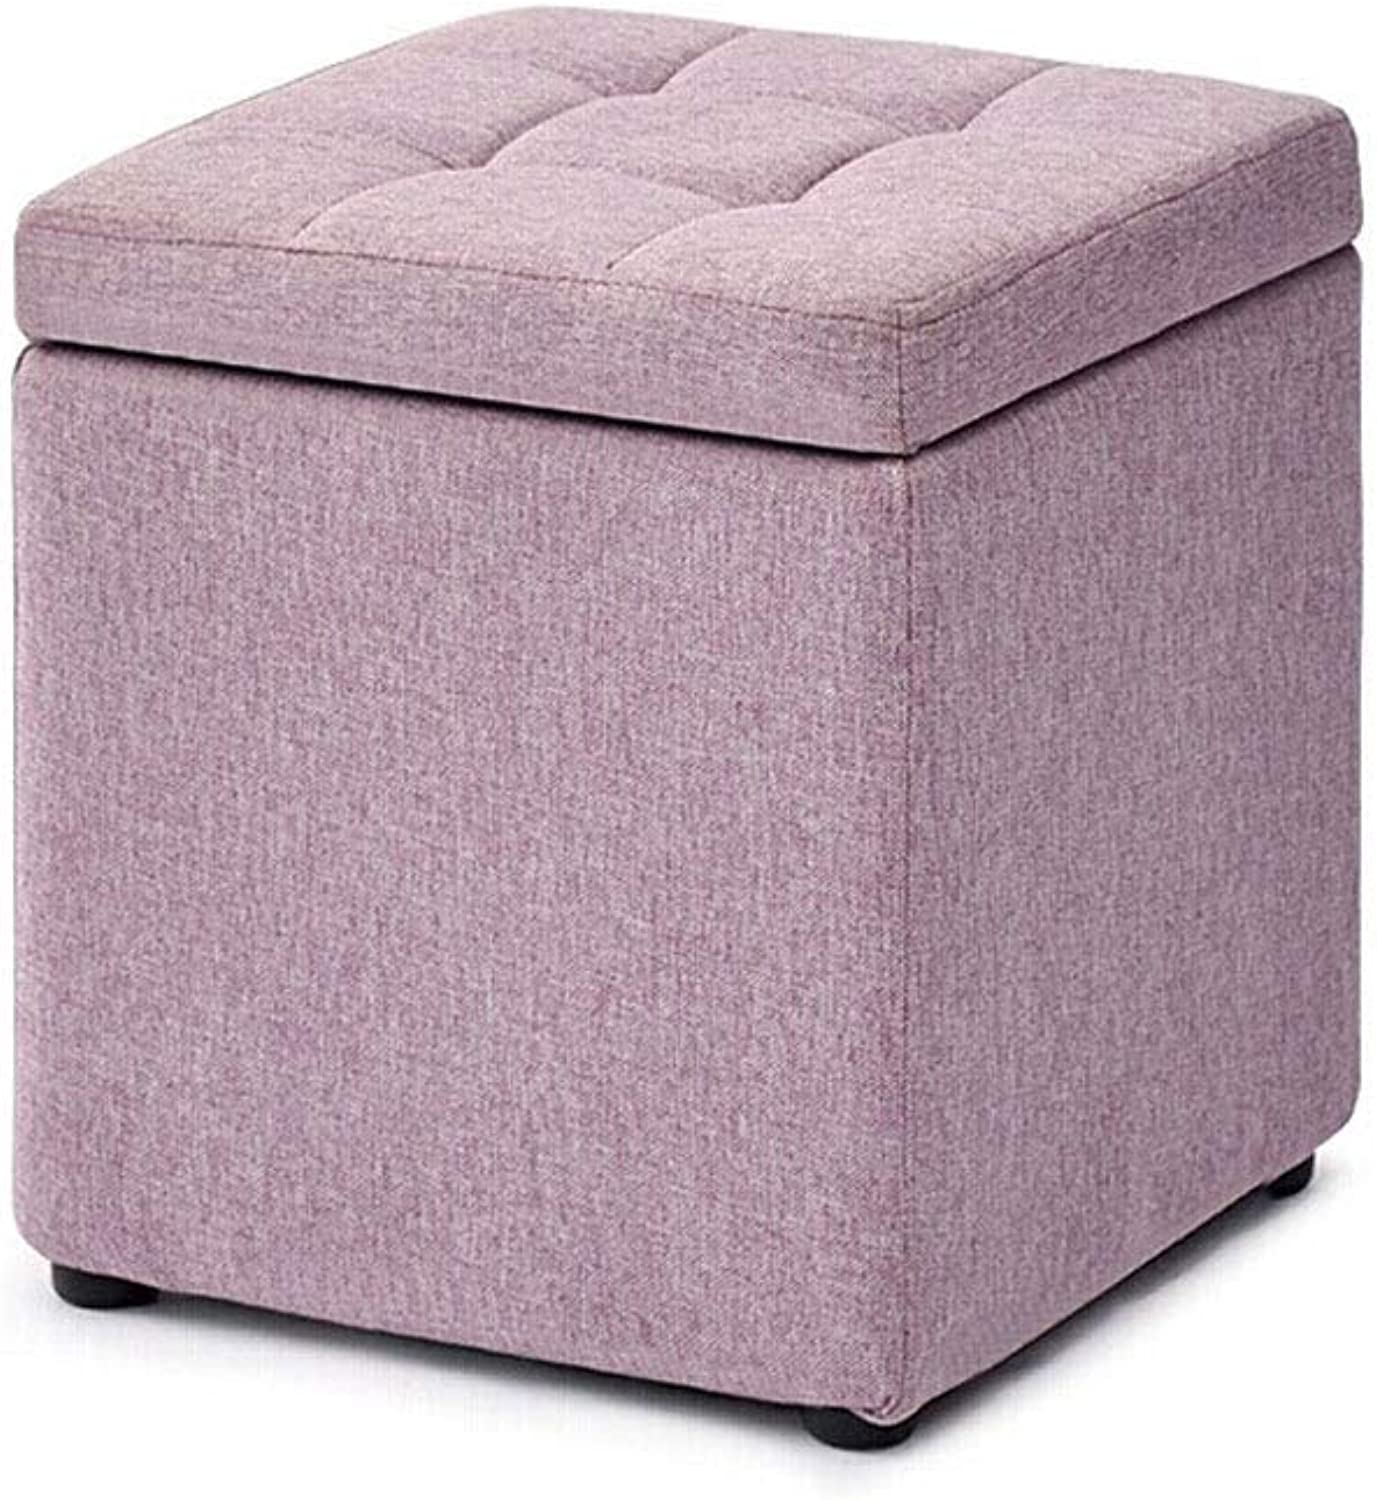 GJD Home Fabric Footstool, Creative Fashion Storage Stool Home Fabric Storage Stool 30×30×35cm, Multi-color Selection (color   Light Purple)